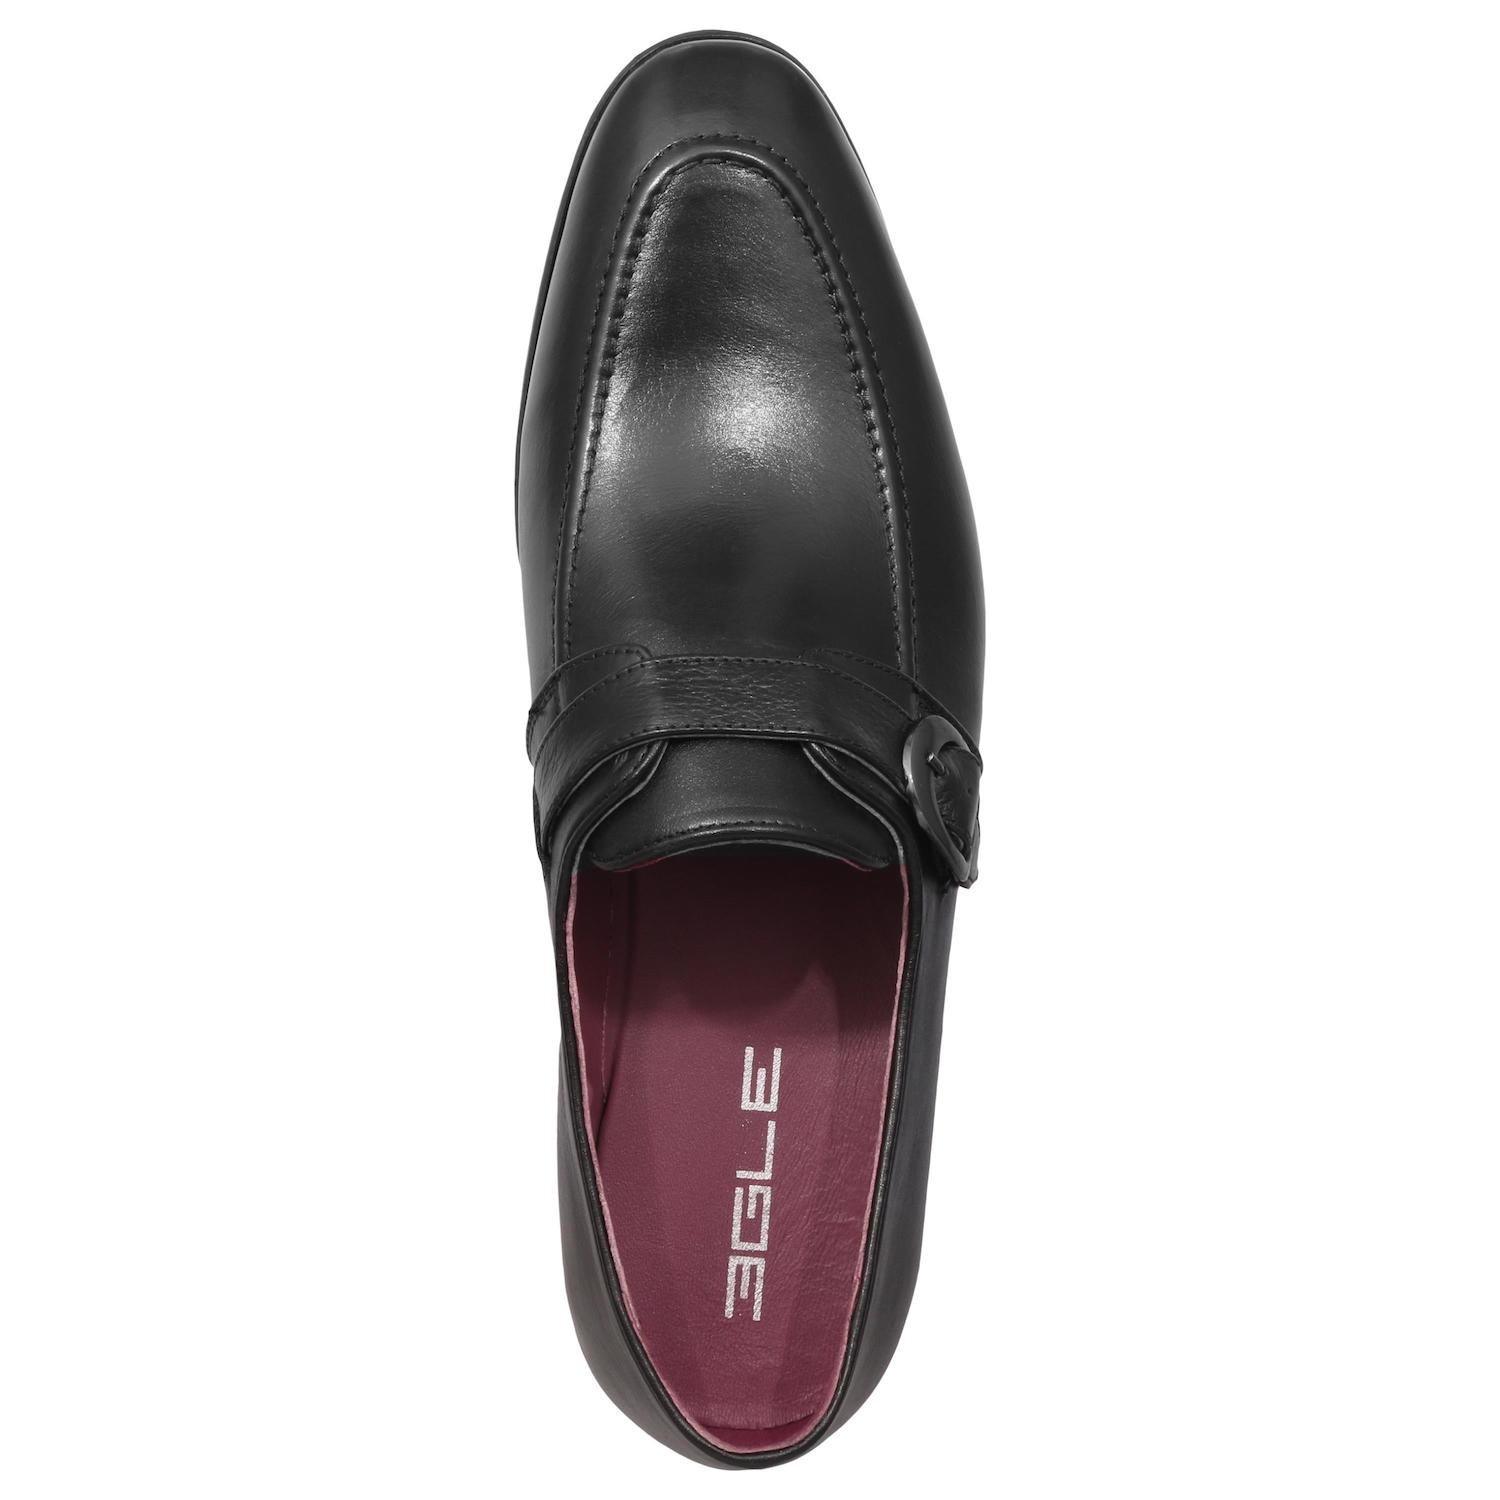 Black Slip-on Formal Shoes